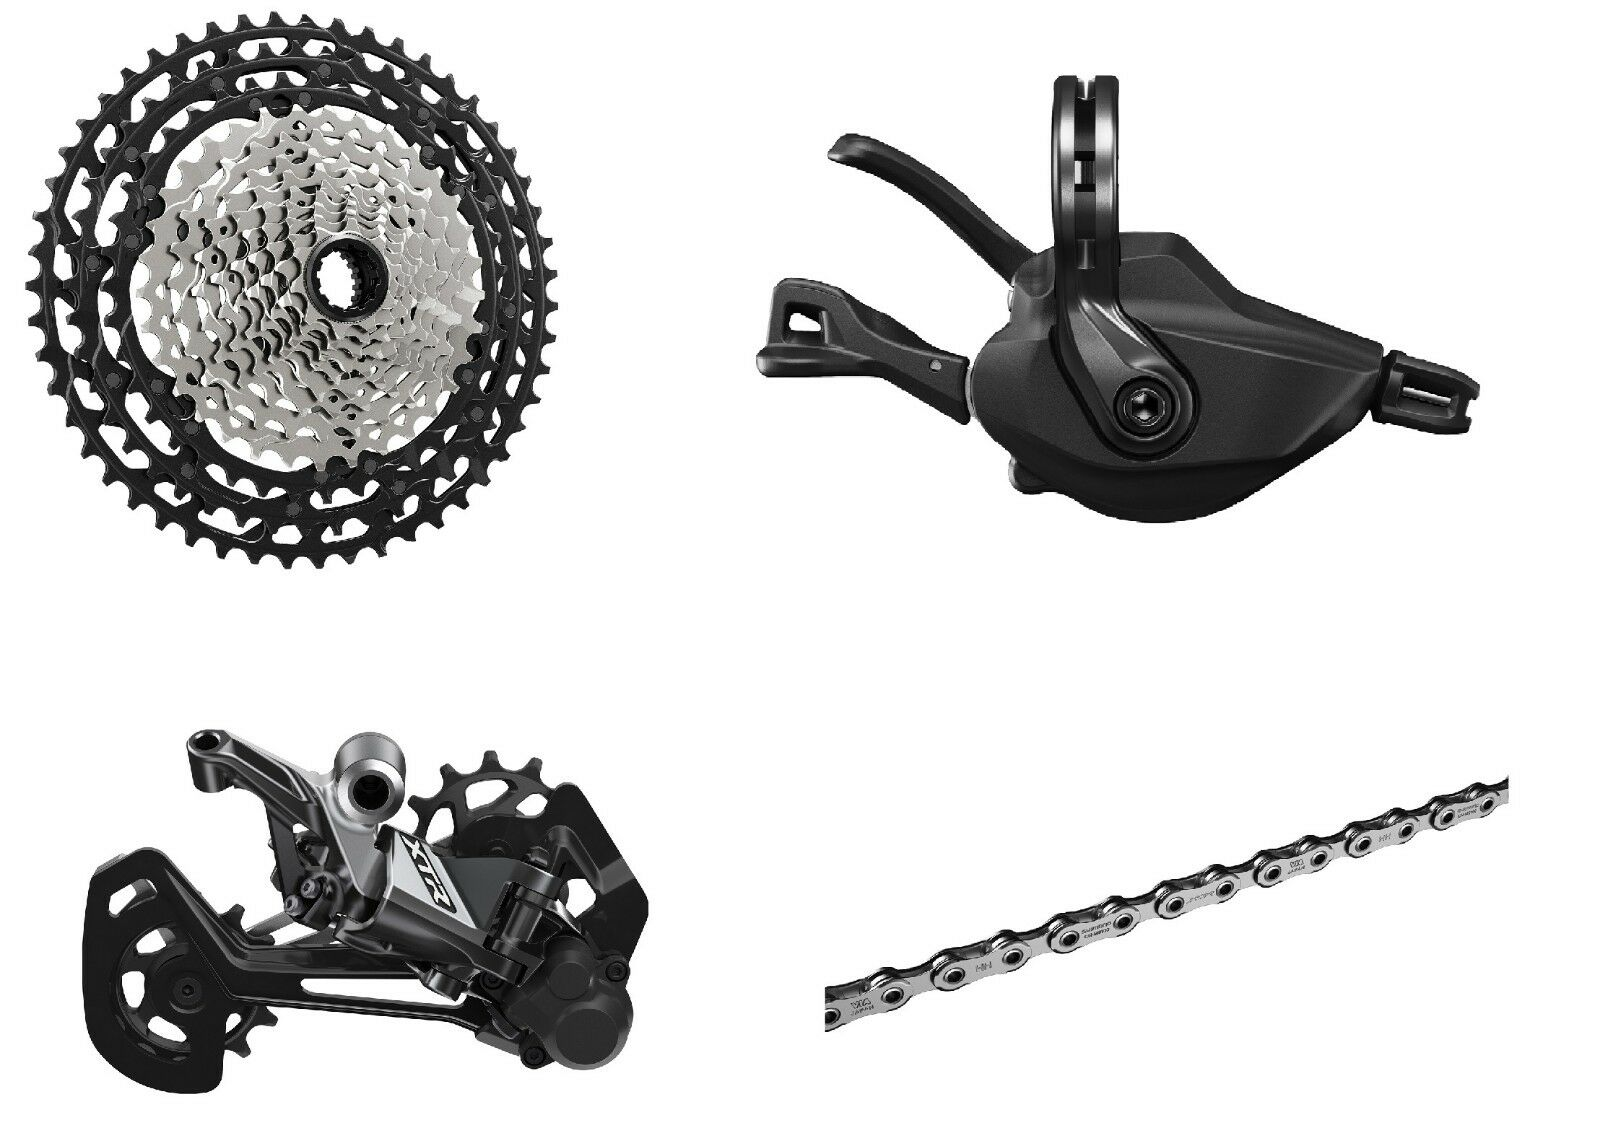 Gruppo Upgrade Kit SHIMANO  XTR M9100 12v  2019  support wholesale retail